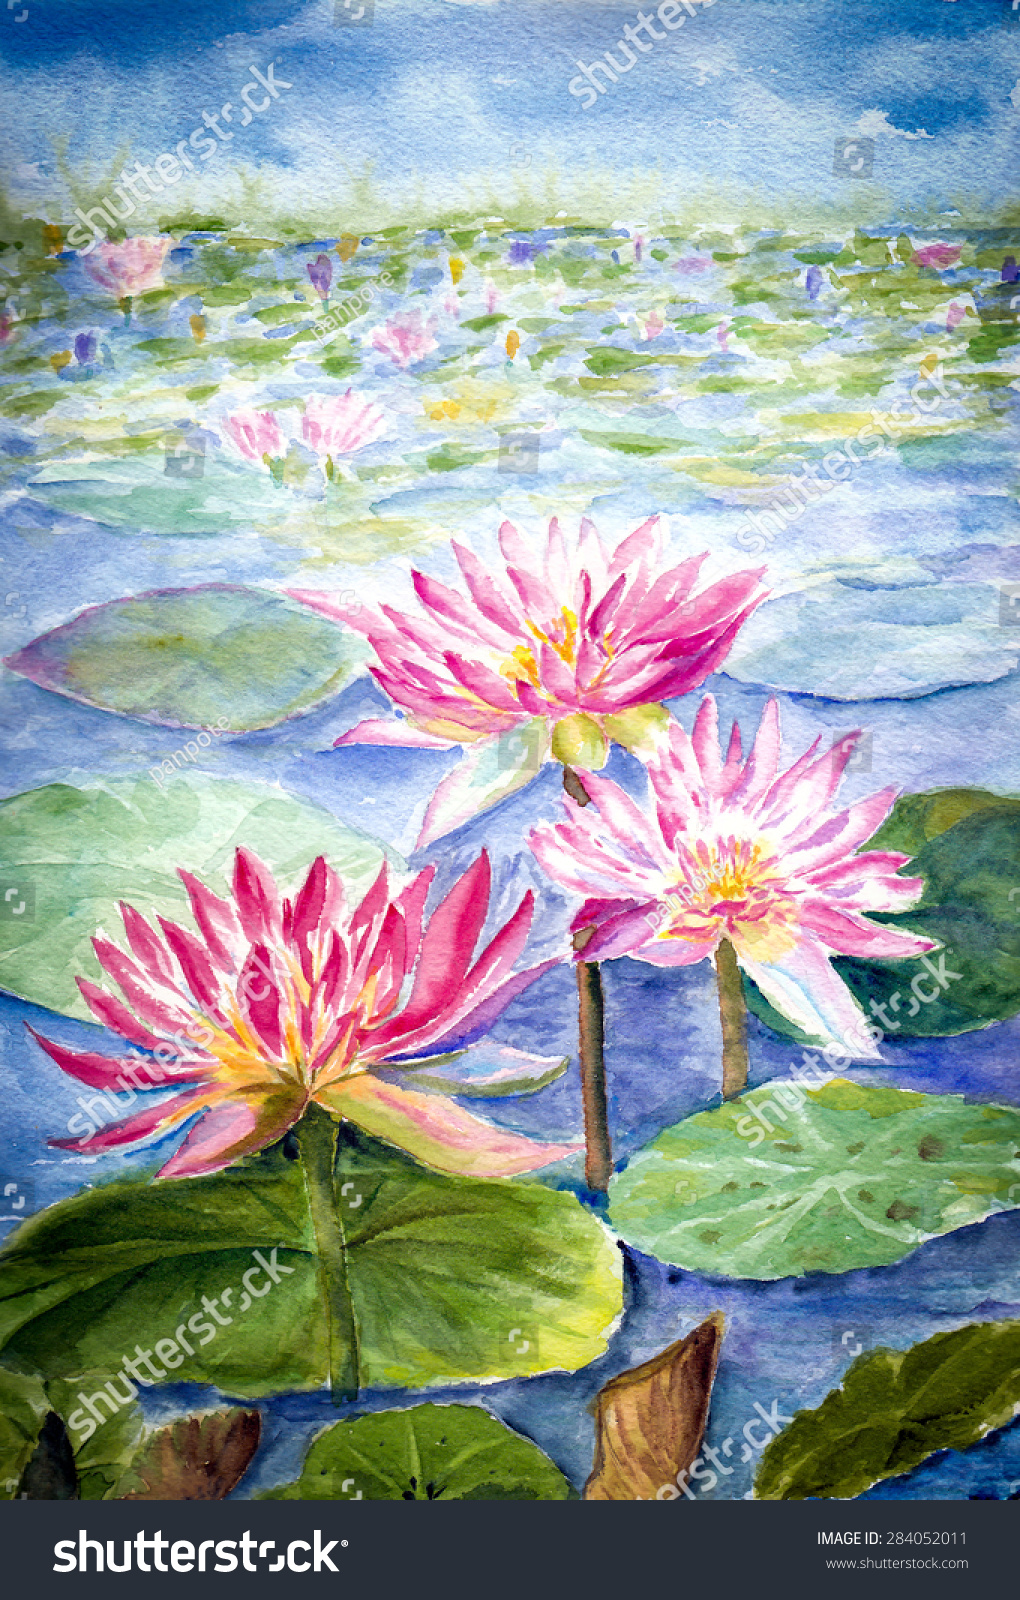 Water Color Painting Lotus Flower Stock Illustration 284052011